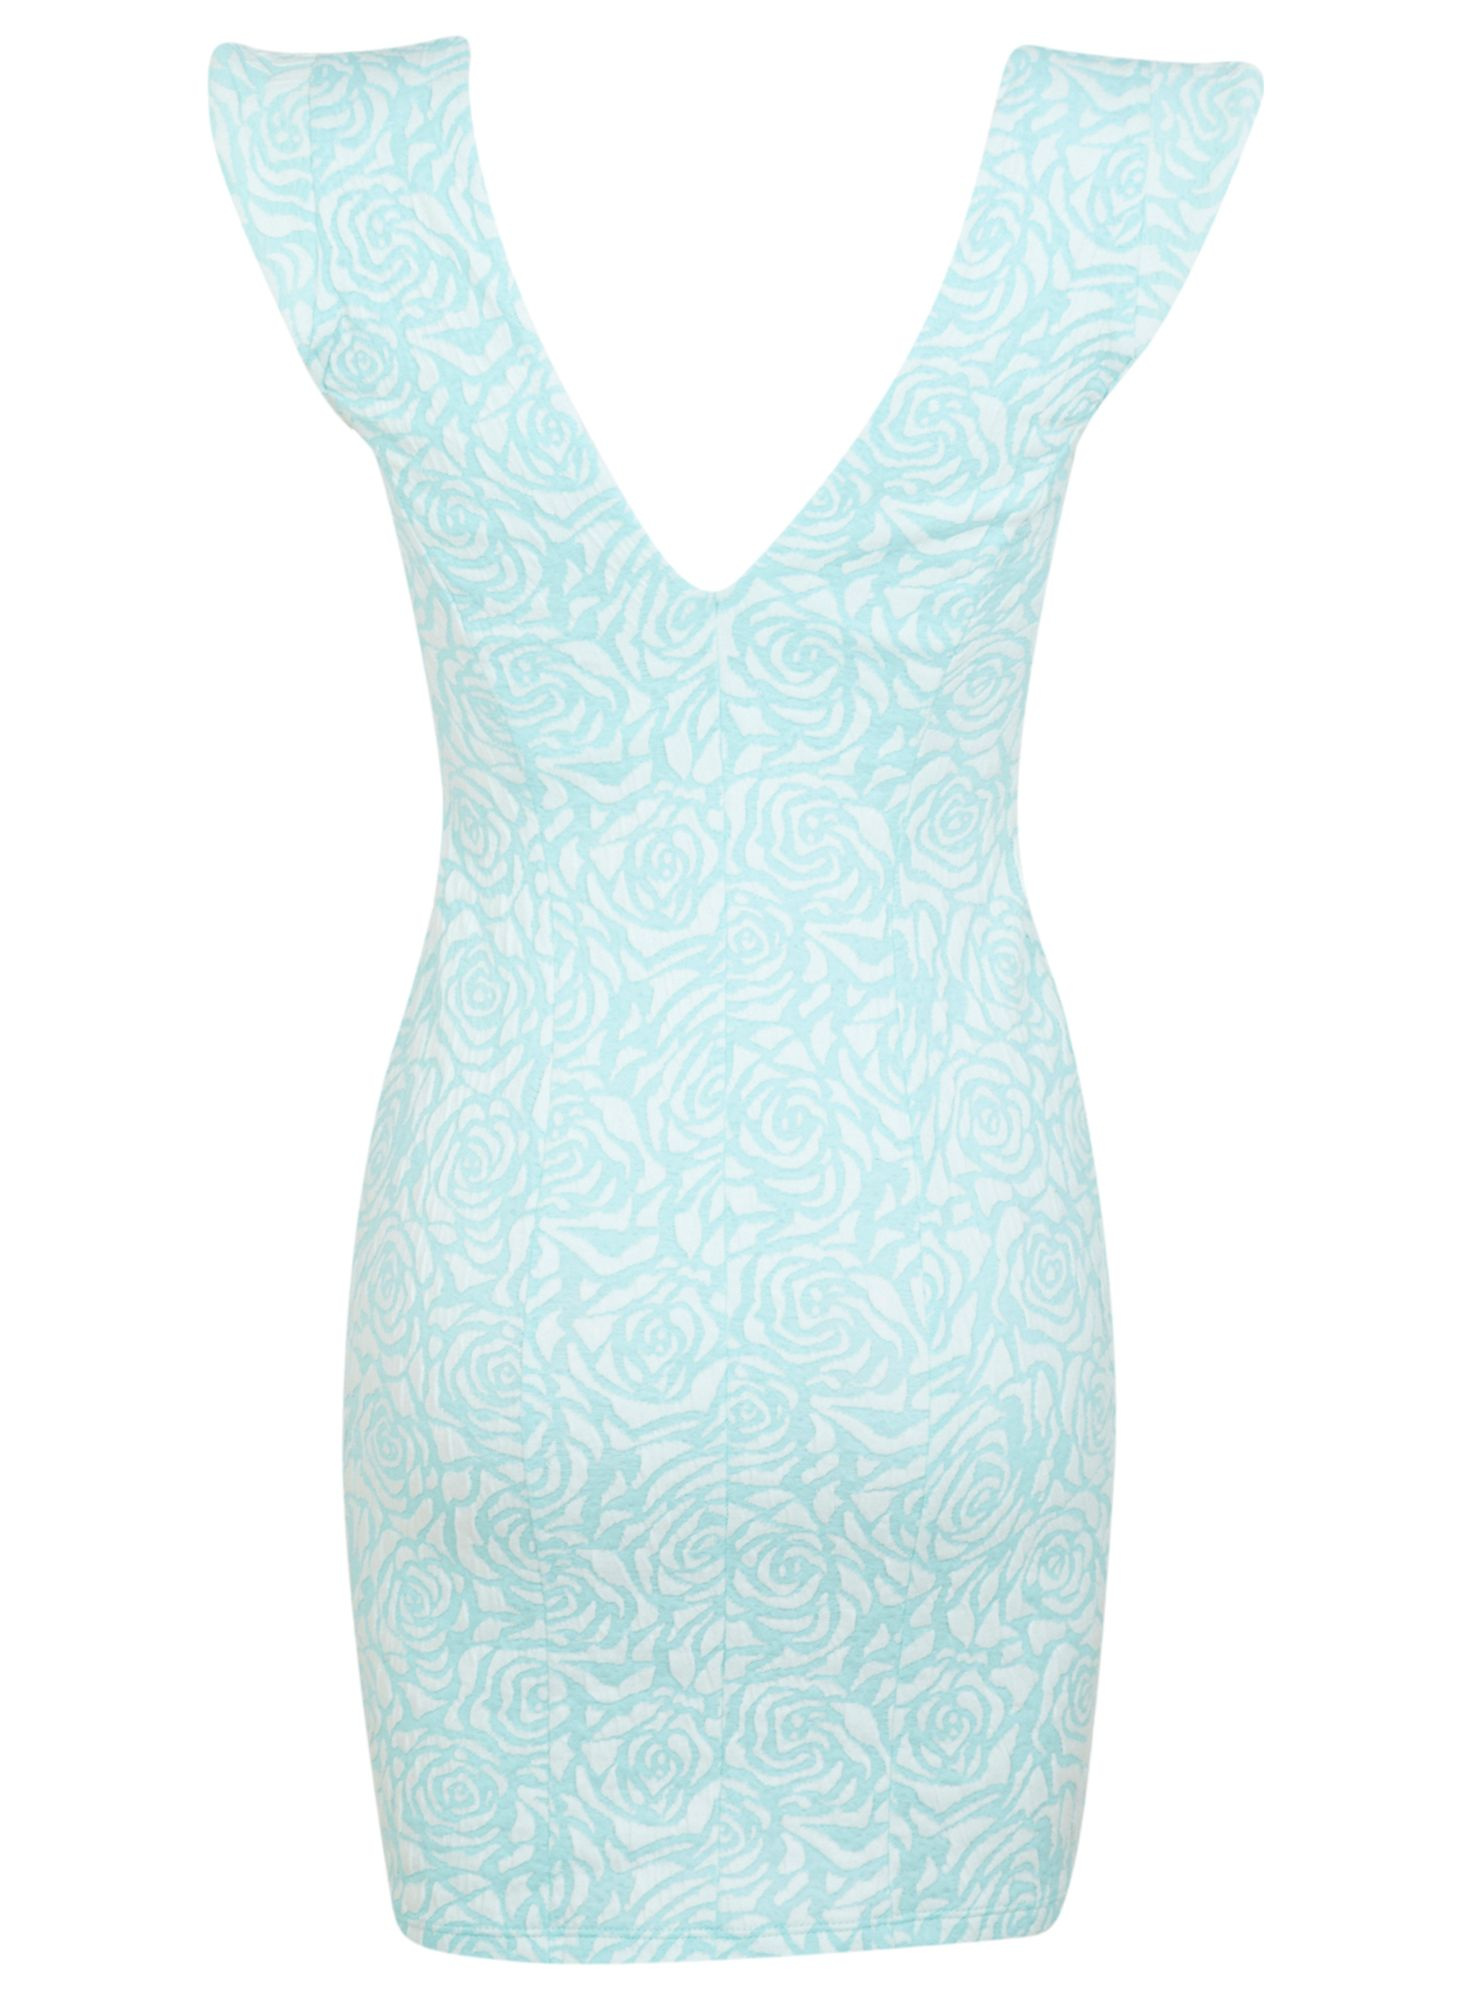 Petites mint rose bodycon